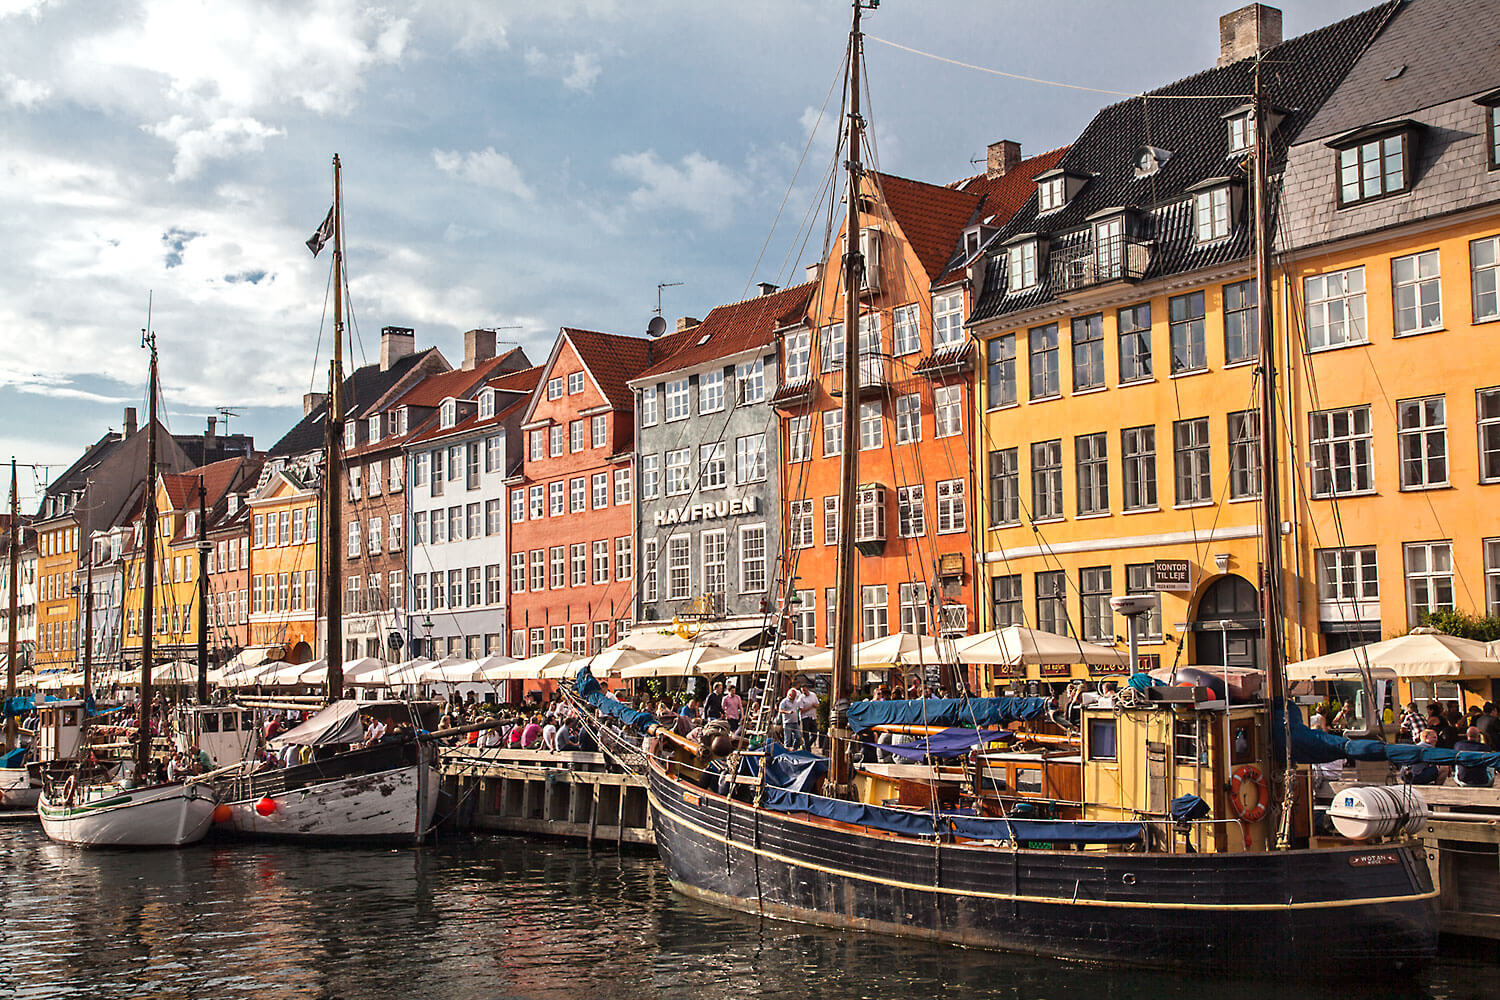 Boats and typical architecture buildings in Nyhavn, Copenhagen.